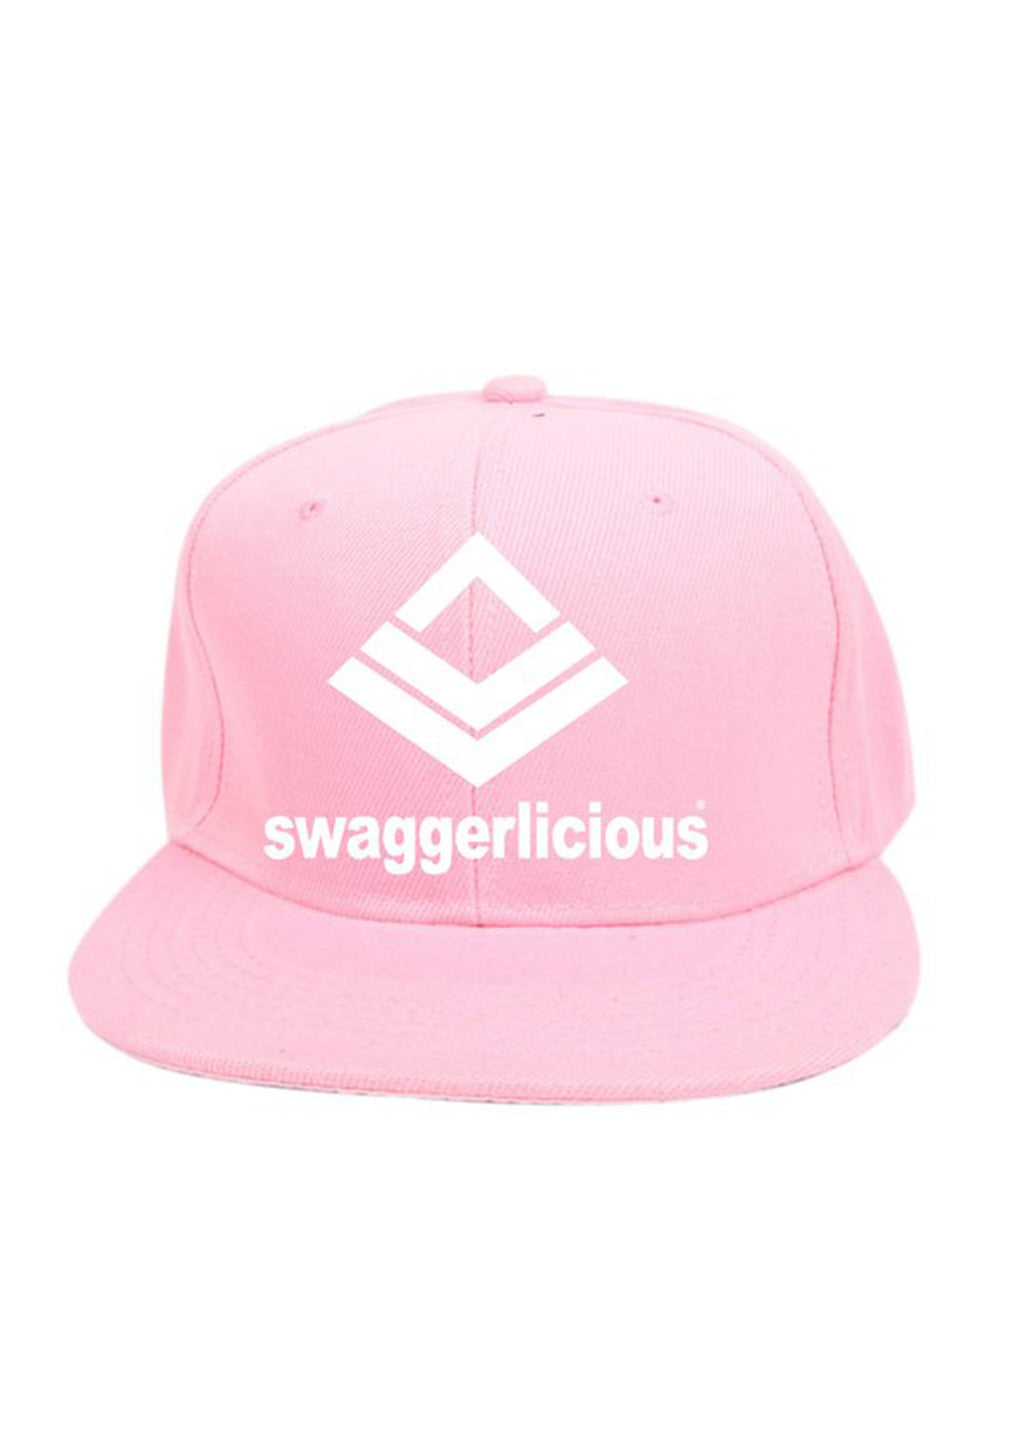 Swaggerlicious Classic Pink Snapback Cap with Large Logo - swaggerlicious-clothing.com